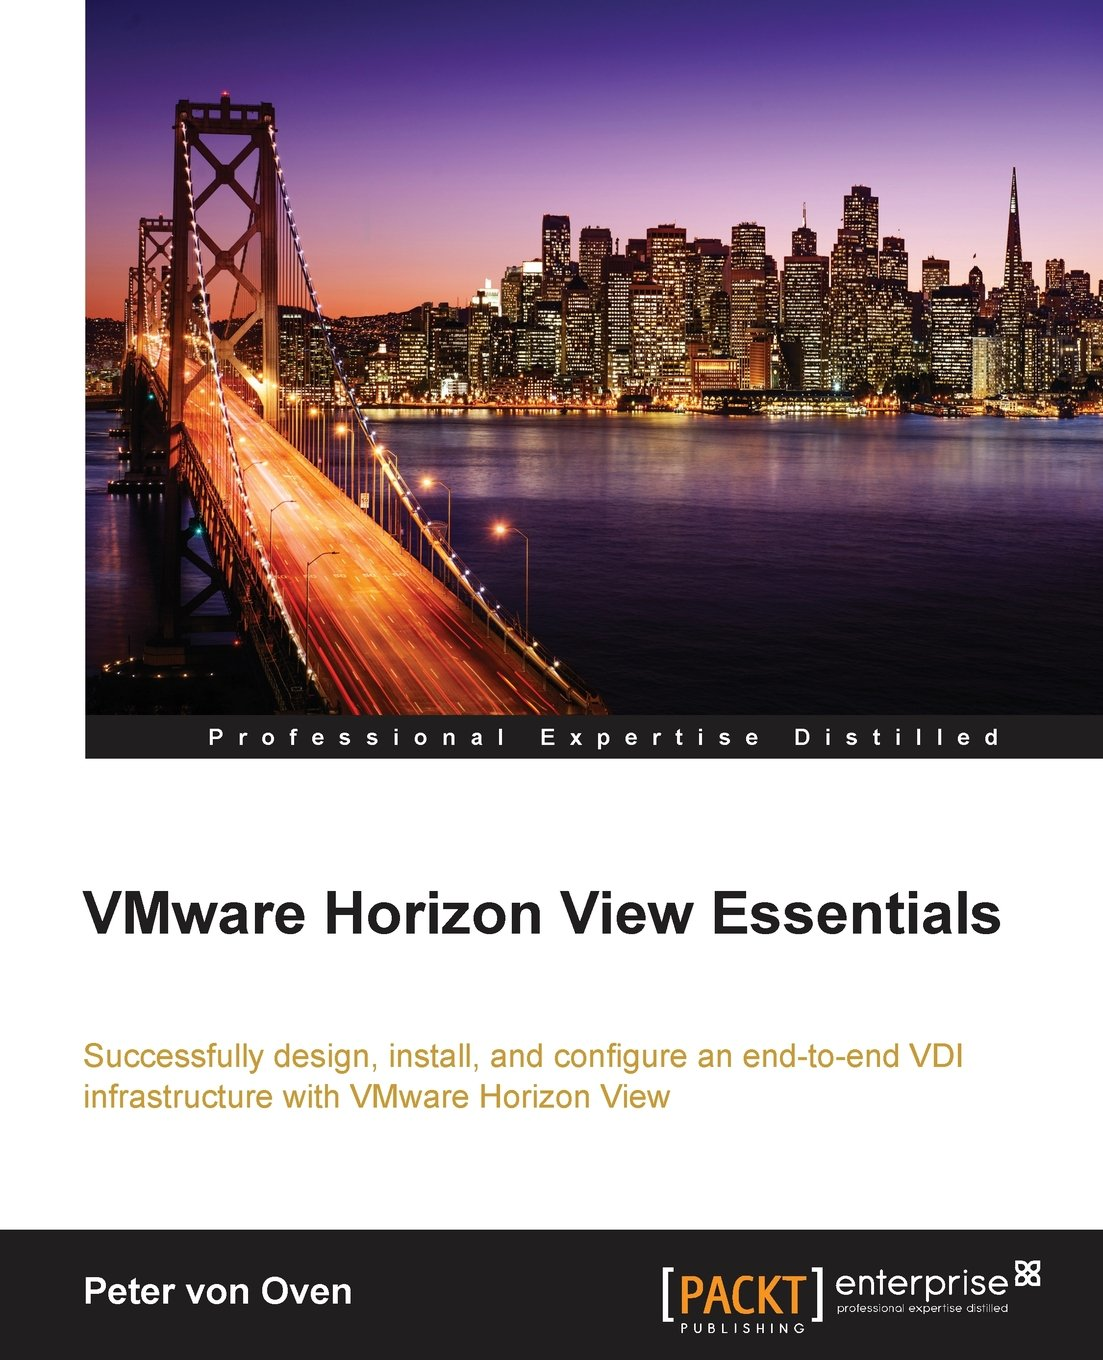 VMware Horizon View Essentials free download